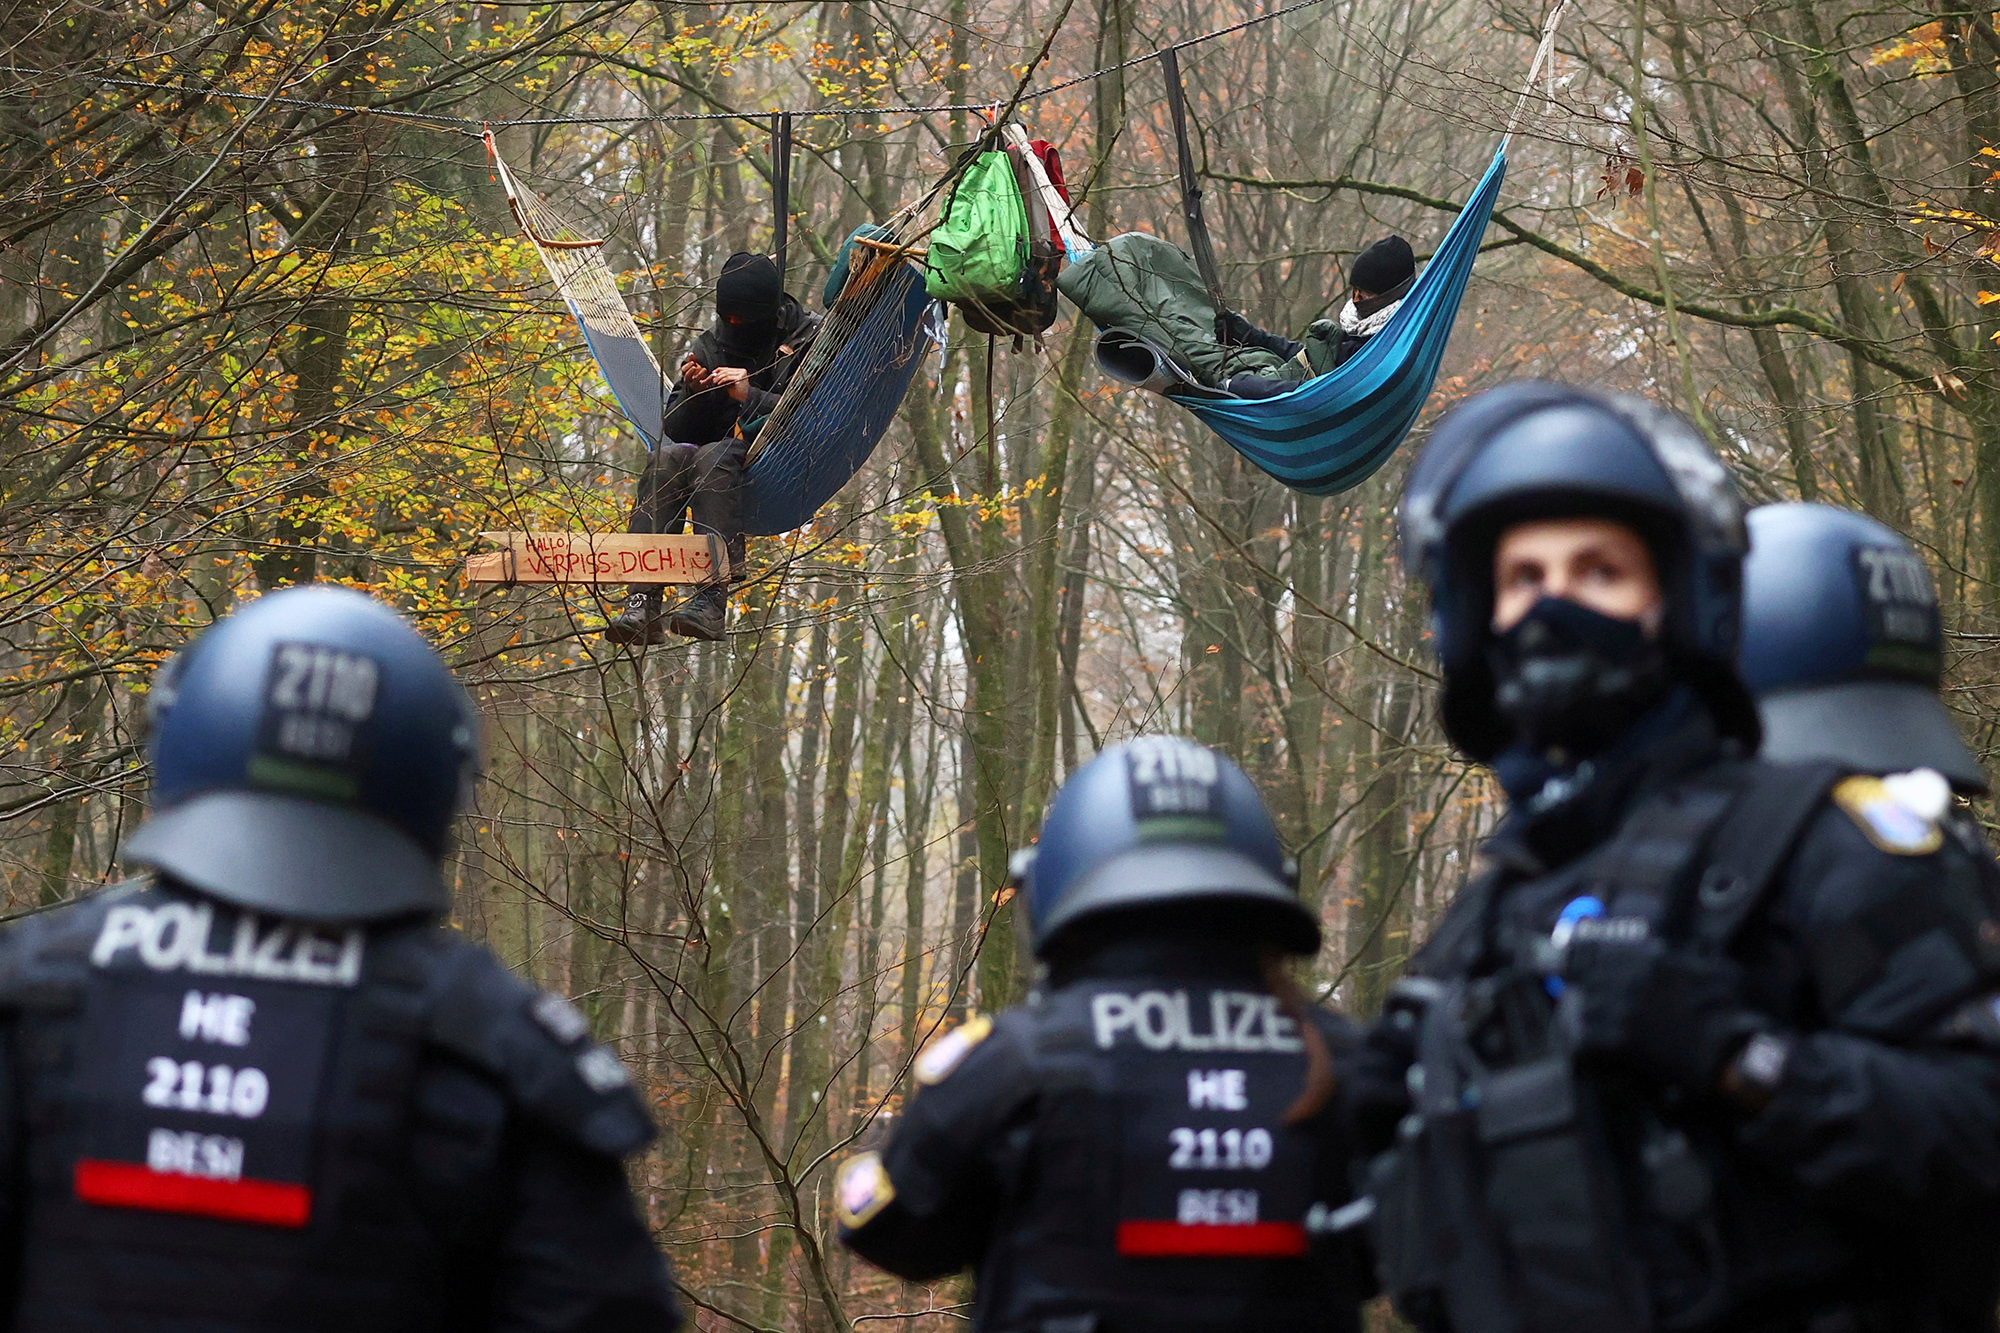 Police officers are seen as demonstrators lie in hammocks hanging from trees during a protest against the extension of the A49 motorway, in a forest near Stadtallendorf, Germany, November 11, 2020. REUTERS/Kai Pfaffenbach